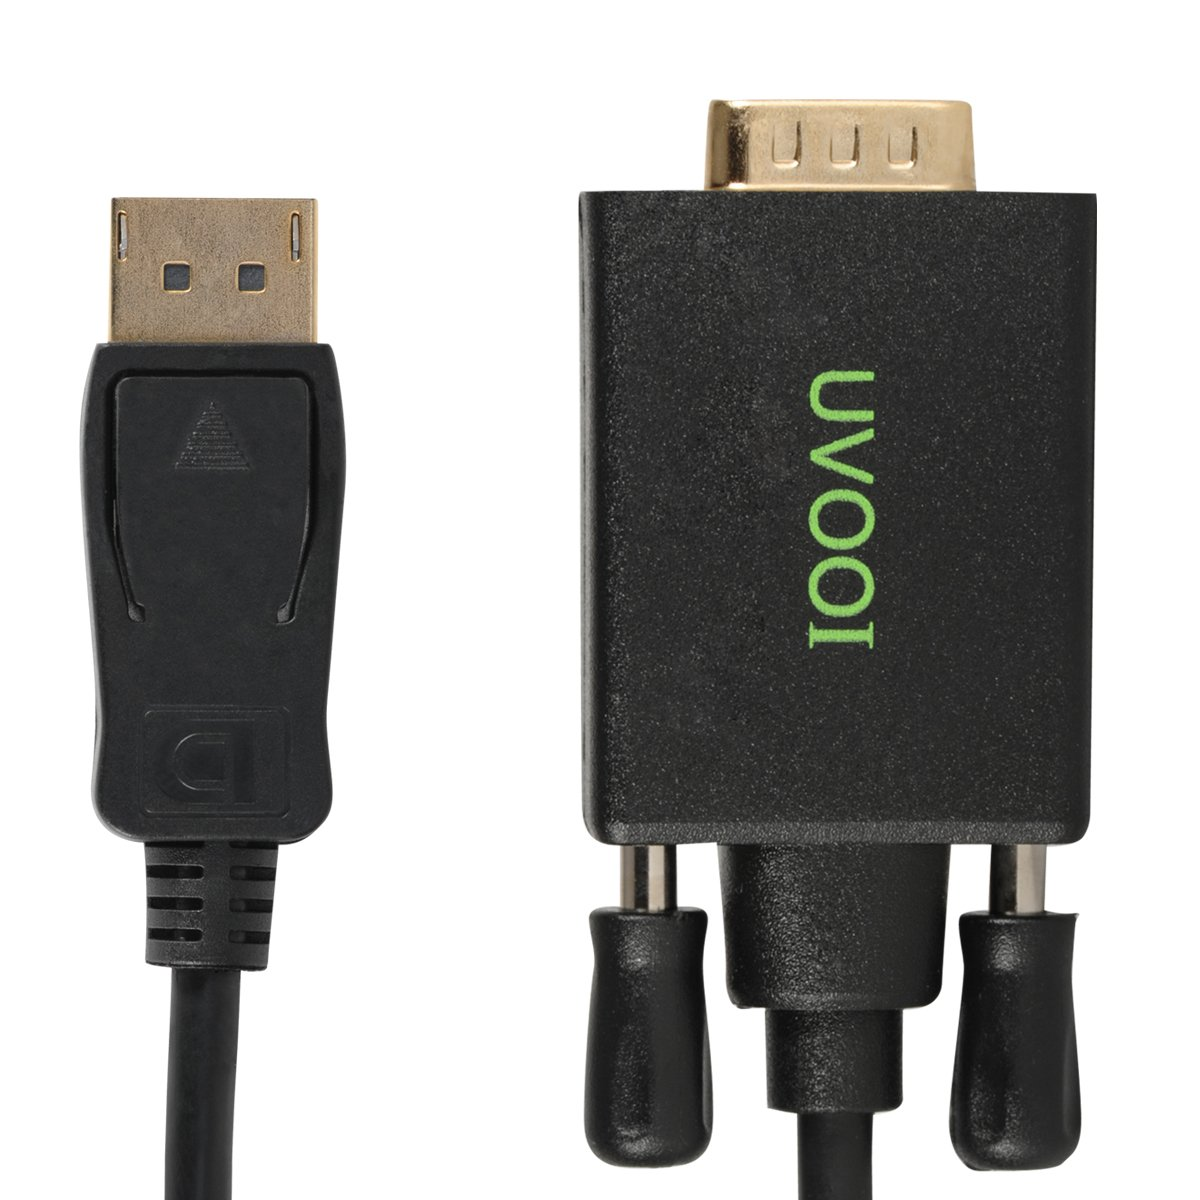 DisplayPort to VGA Cable 15 feet, UVOOI Gold Plated VGA to Display Port DP Cable Adapter Male to Male by UVOOI (Image #5)